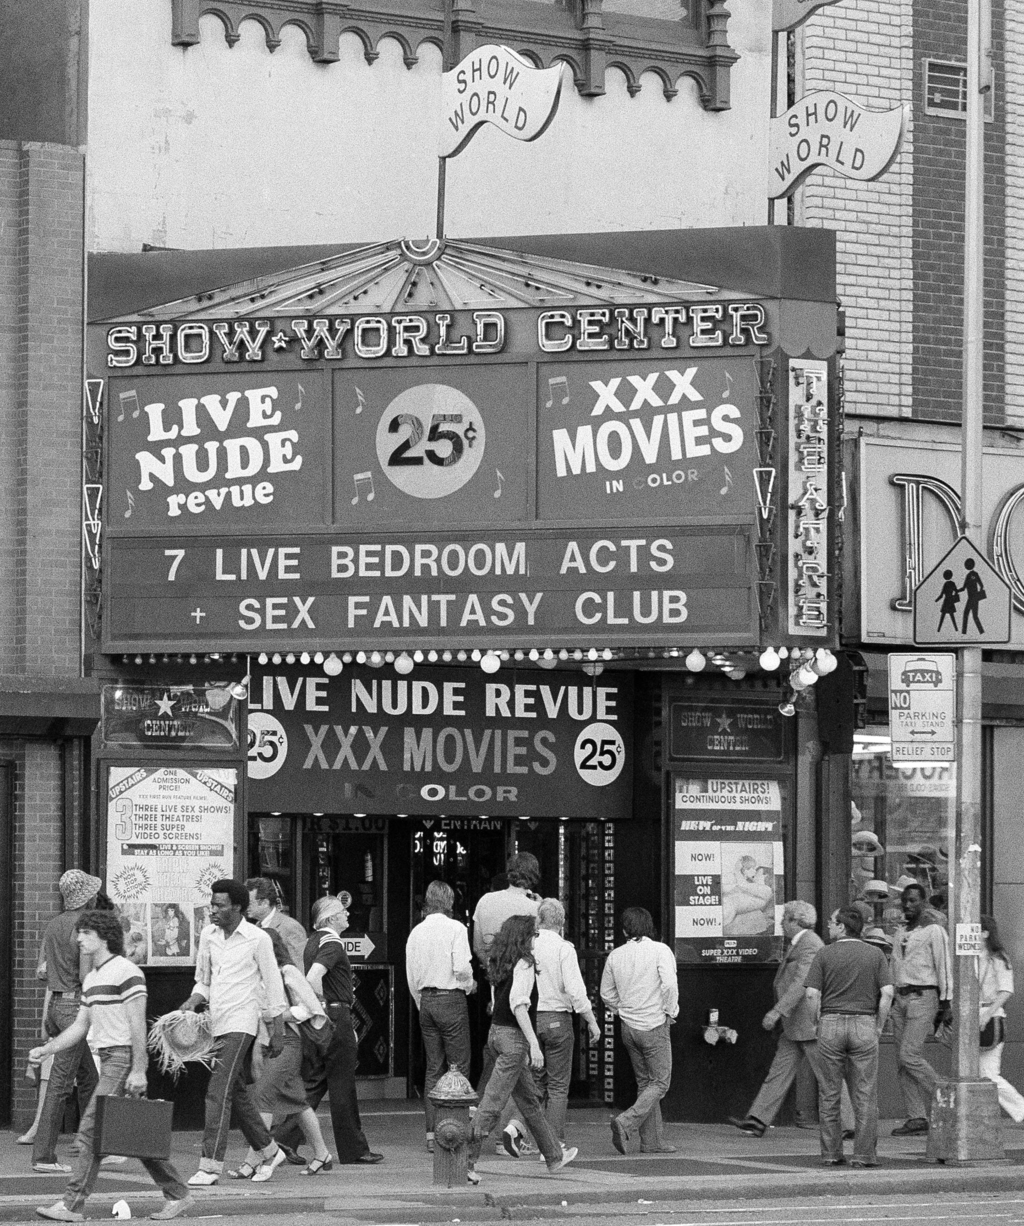 FILE - In this Aug. 9, 1979, file photo, people walk past Show World Center at the edge of New York's Times Square. New York City's two-decade legal w...